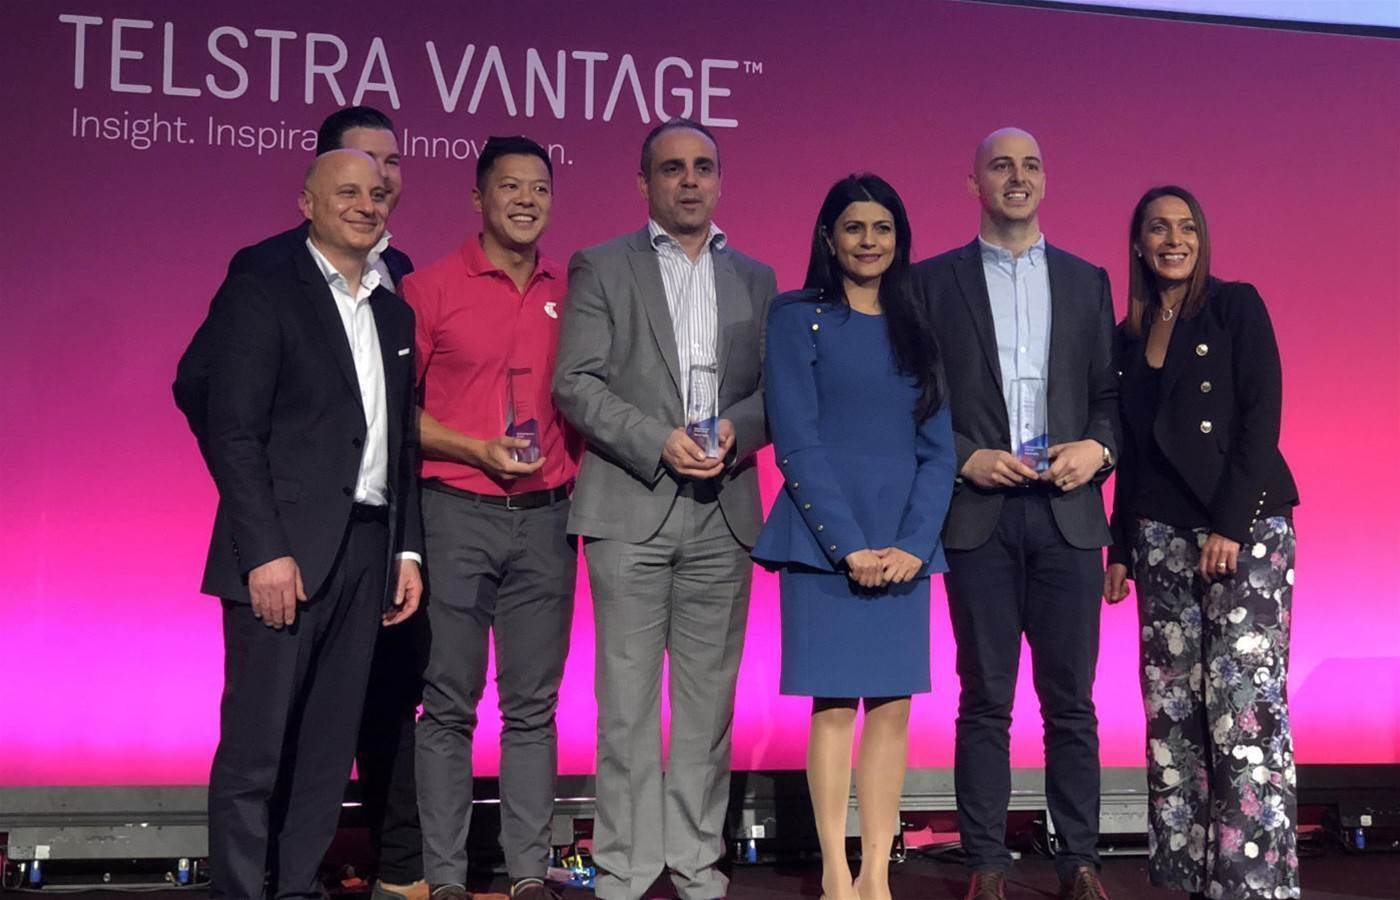 Secure Agility, Thomas Duryea nab Telstra 2018 partner awards ahead of Telstra Vantage